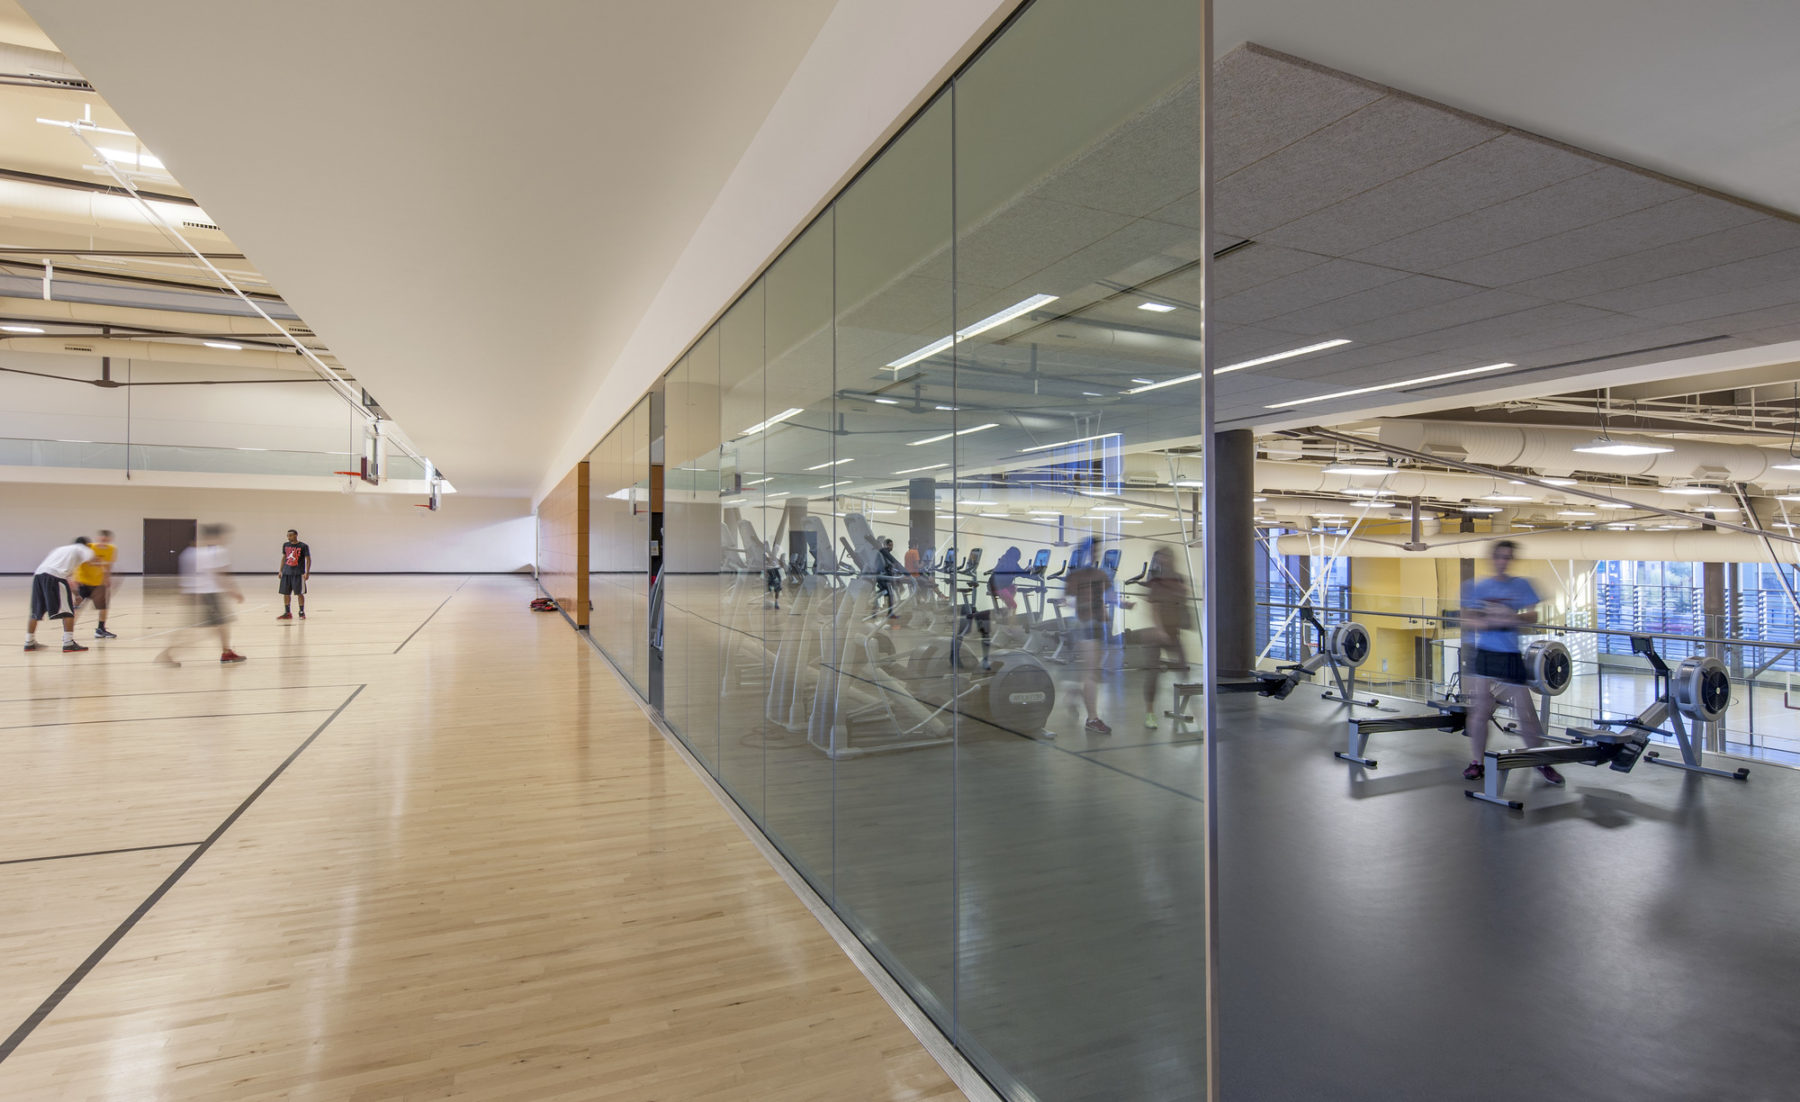 Basketball court and cardio area